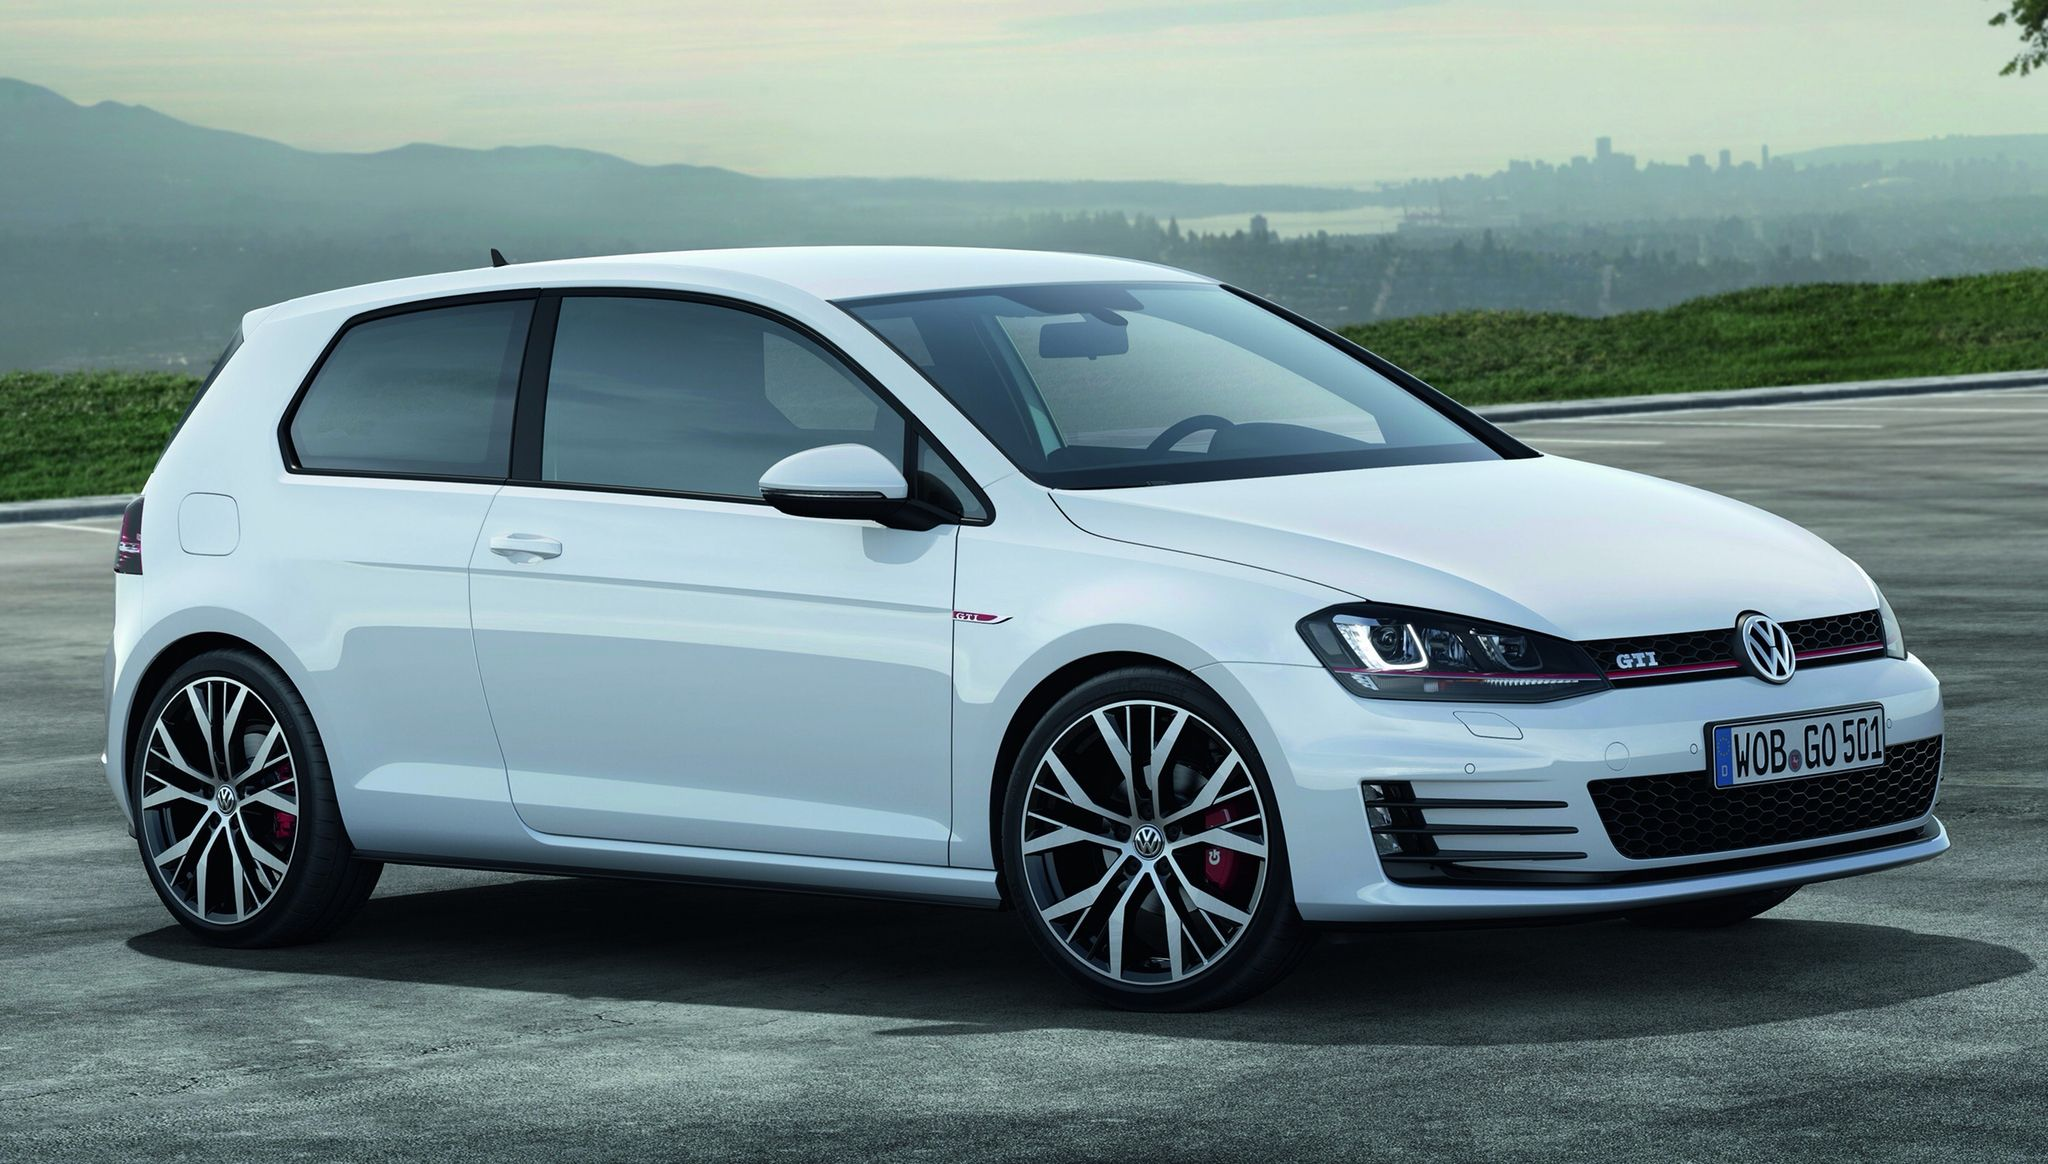 2018 vw golf suv price and release date the german automaker s golf lineup is an impeccable outline of this